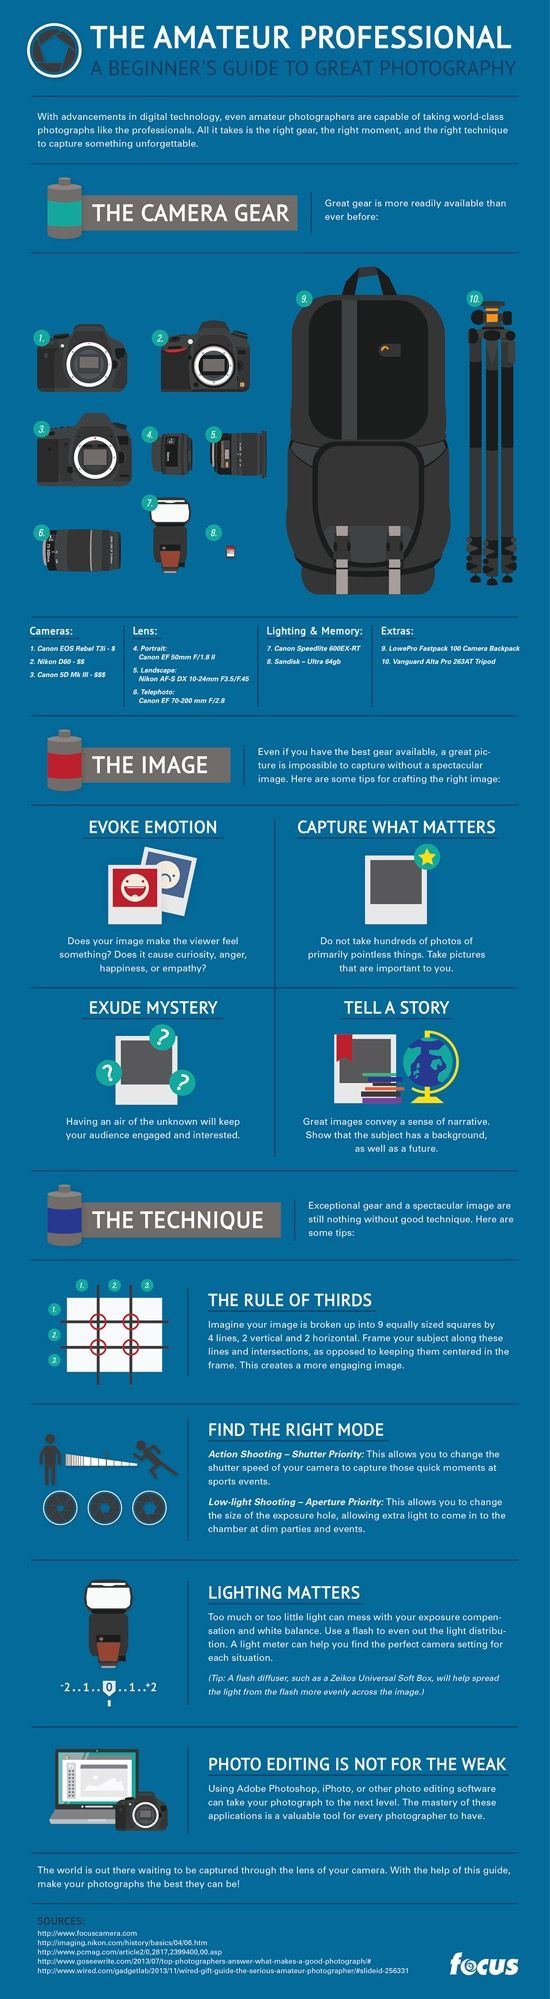 34 Super Useful Infographics and Cheatsheets for Photographers